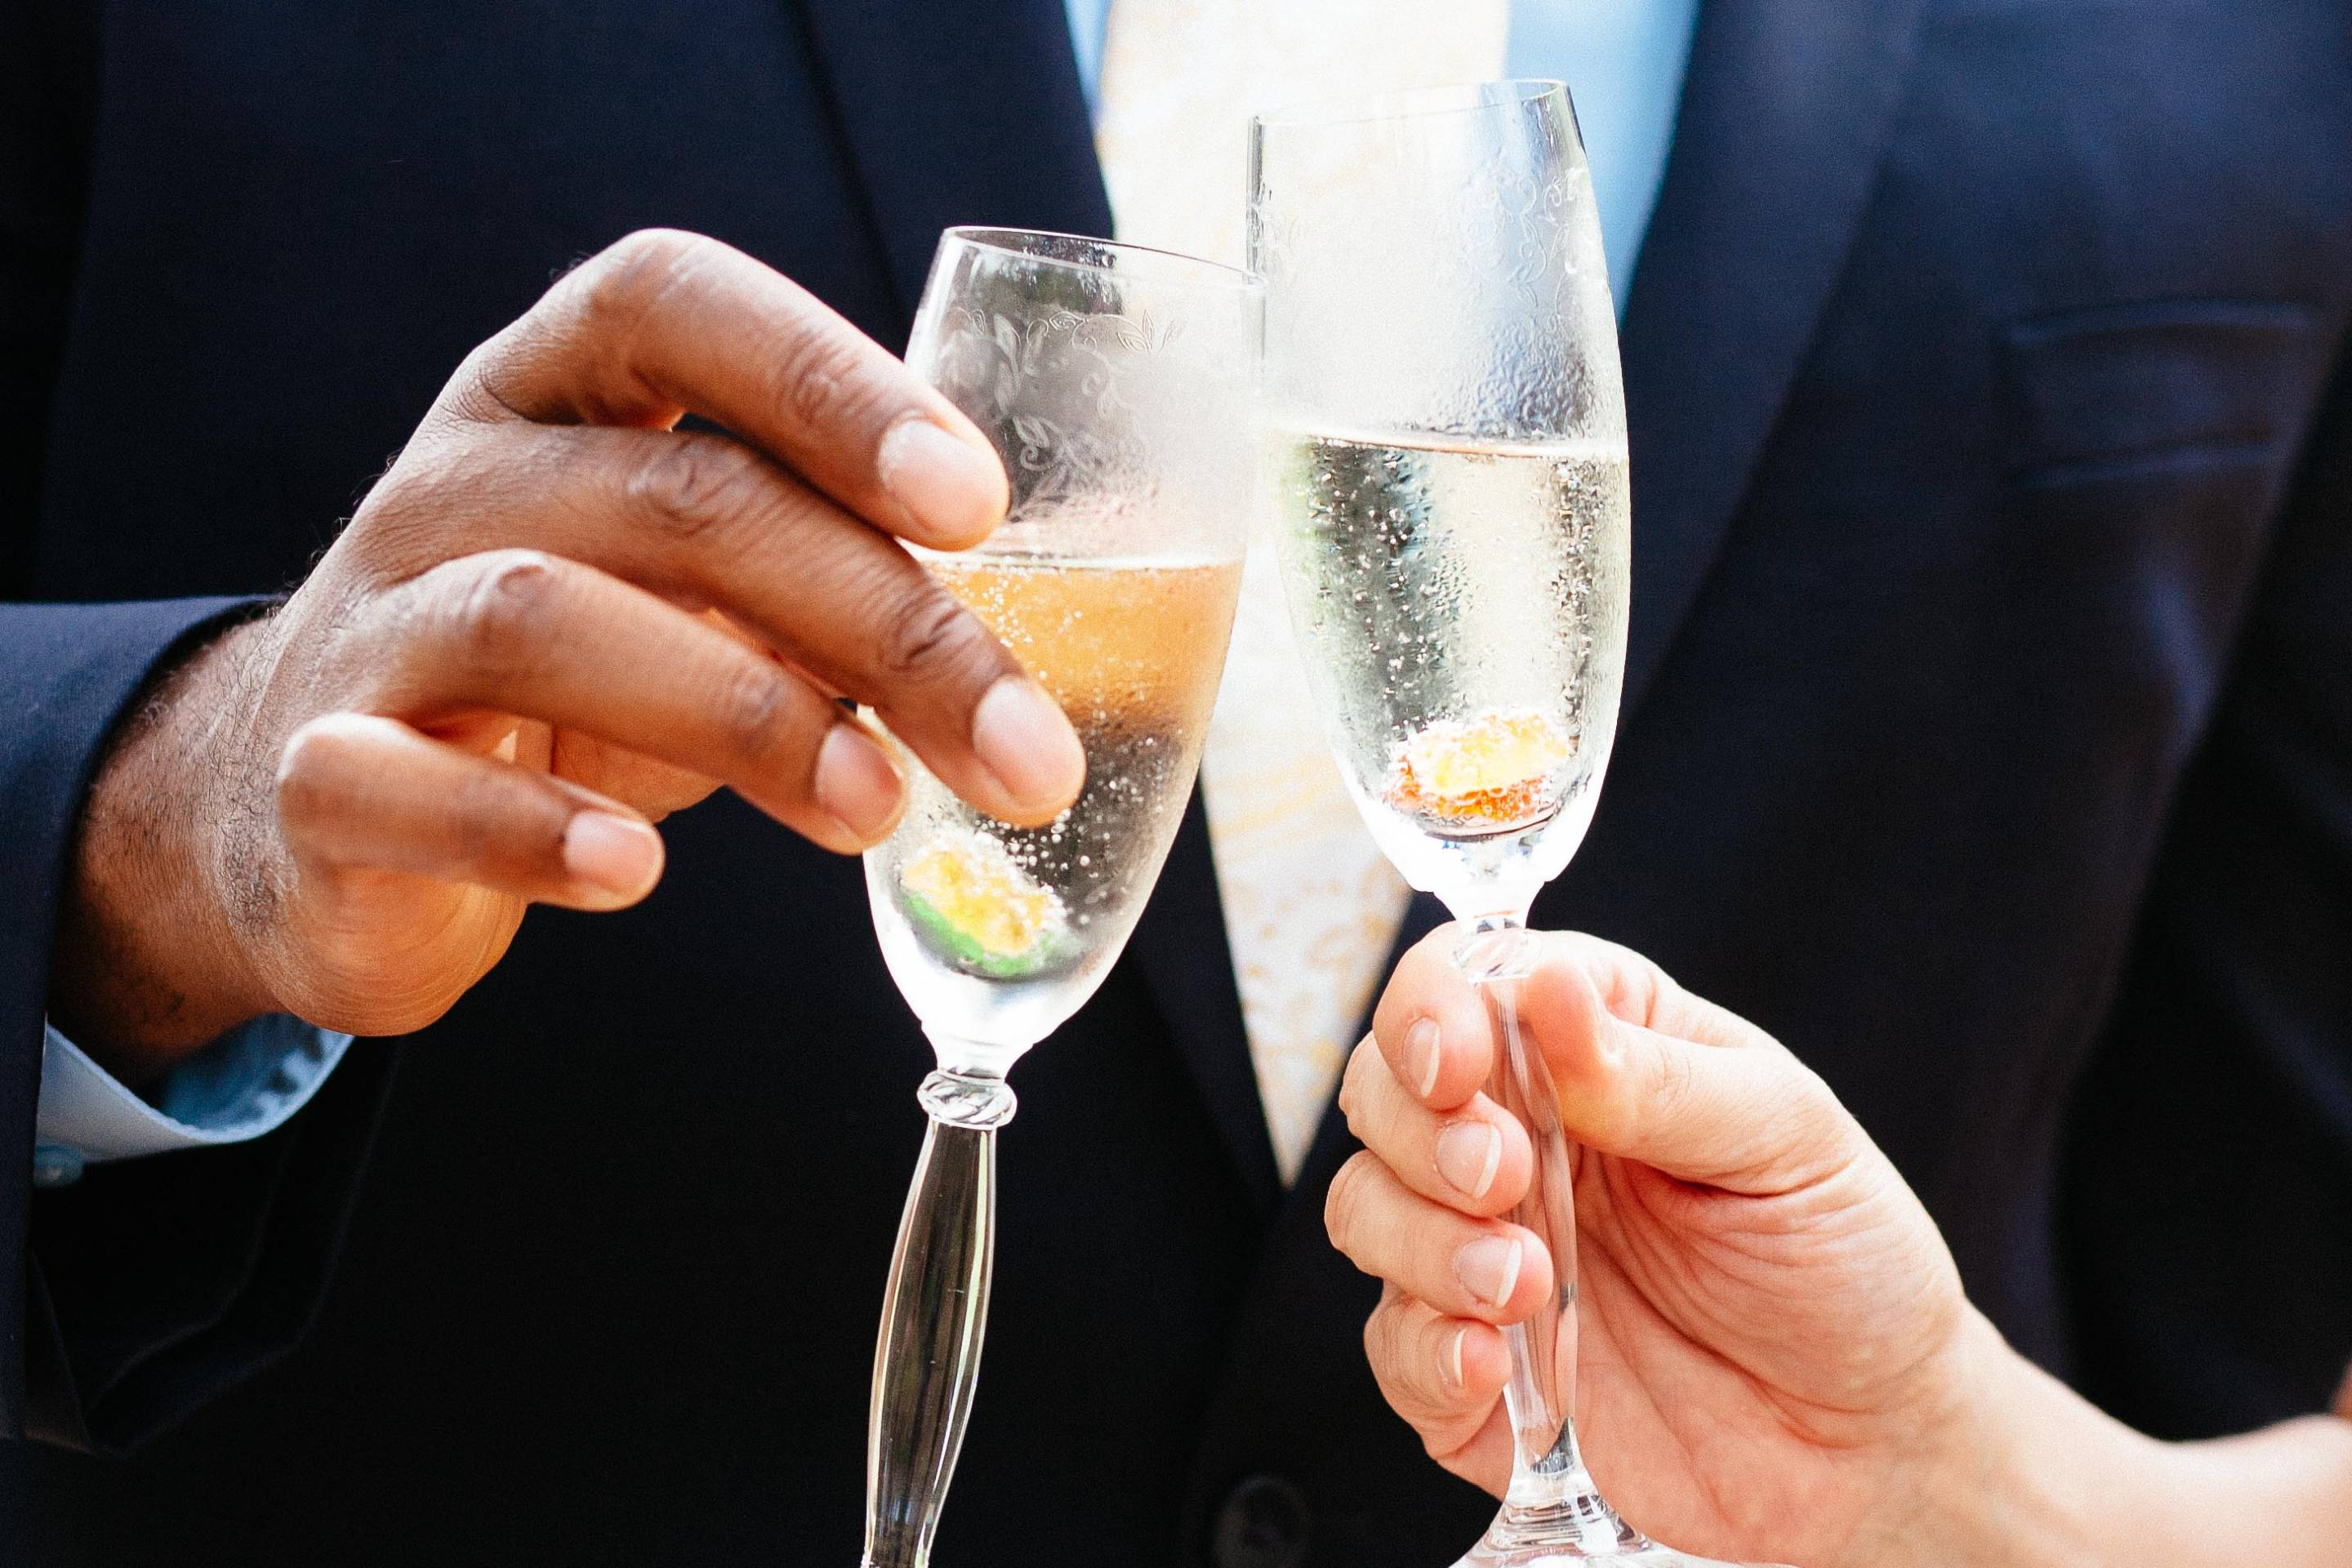 Couple holding champagne glasses and toasting.